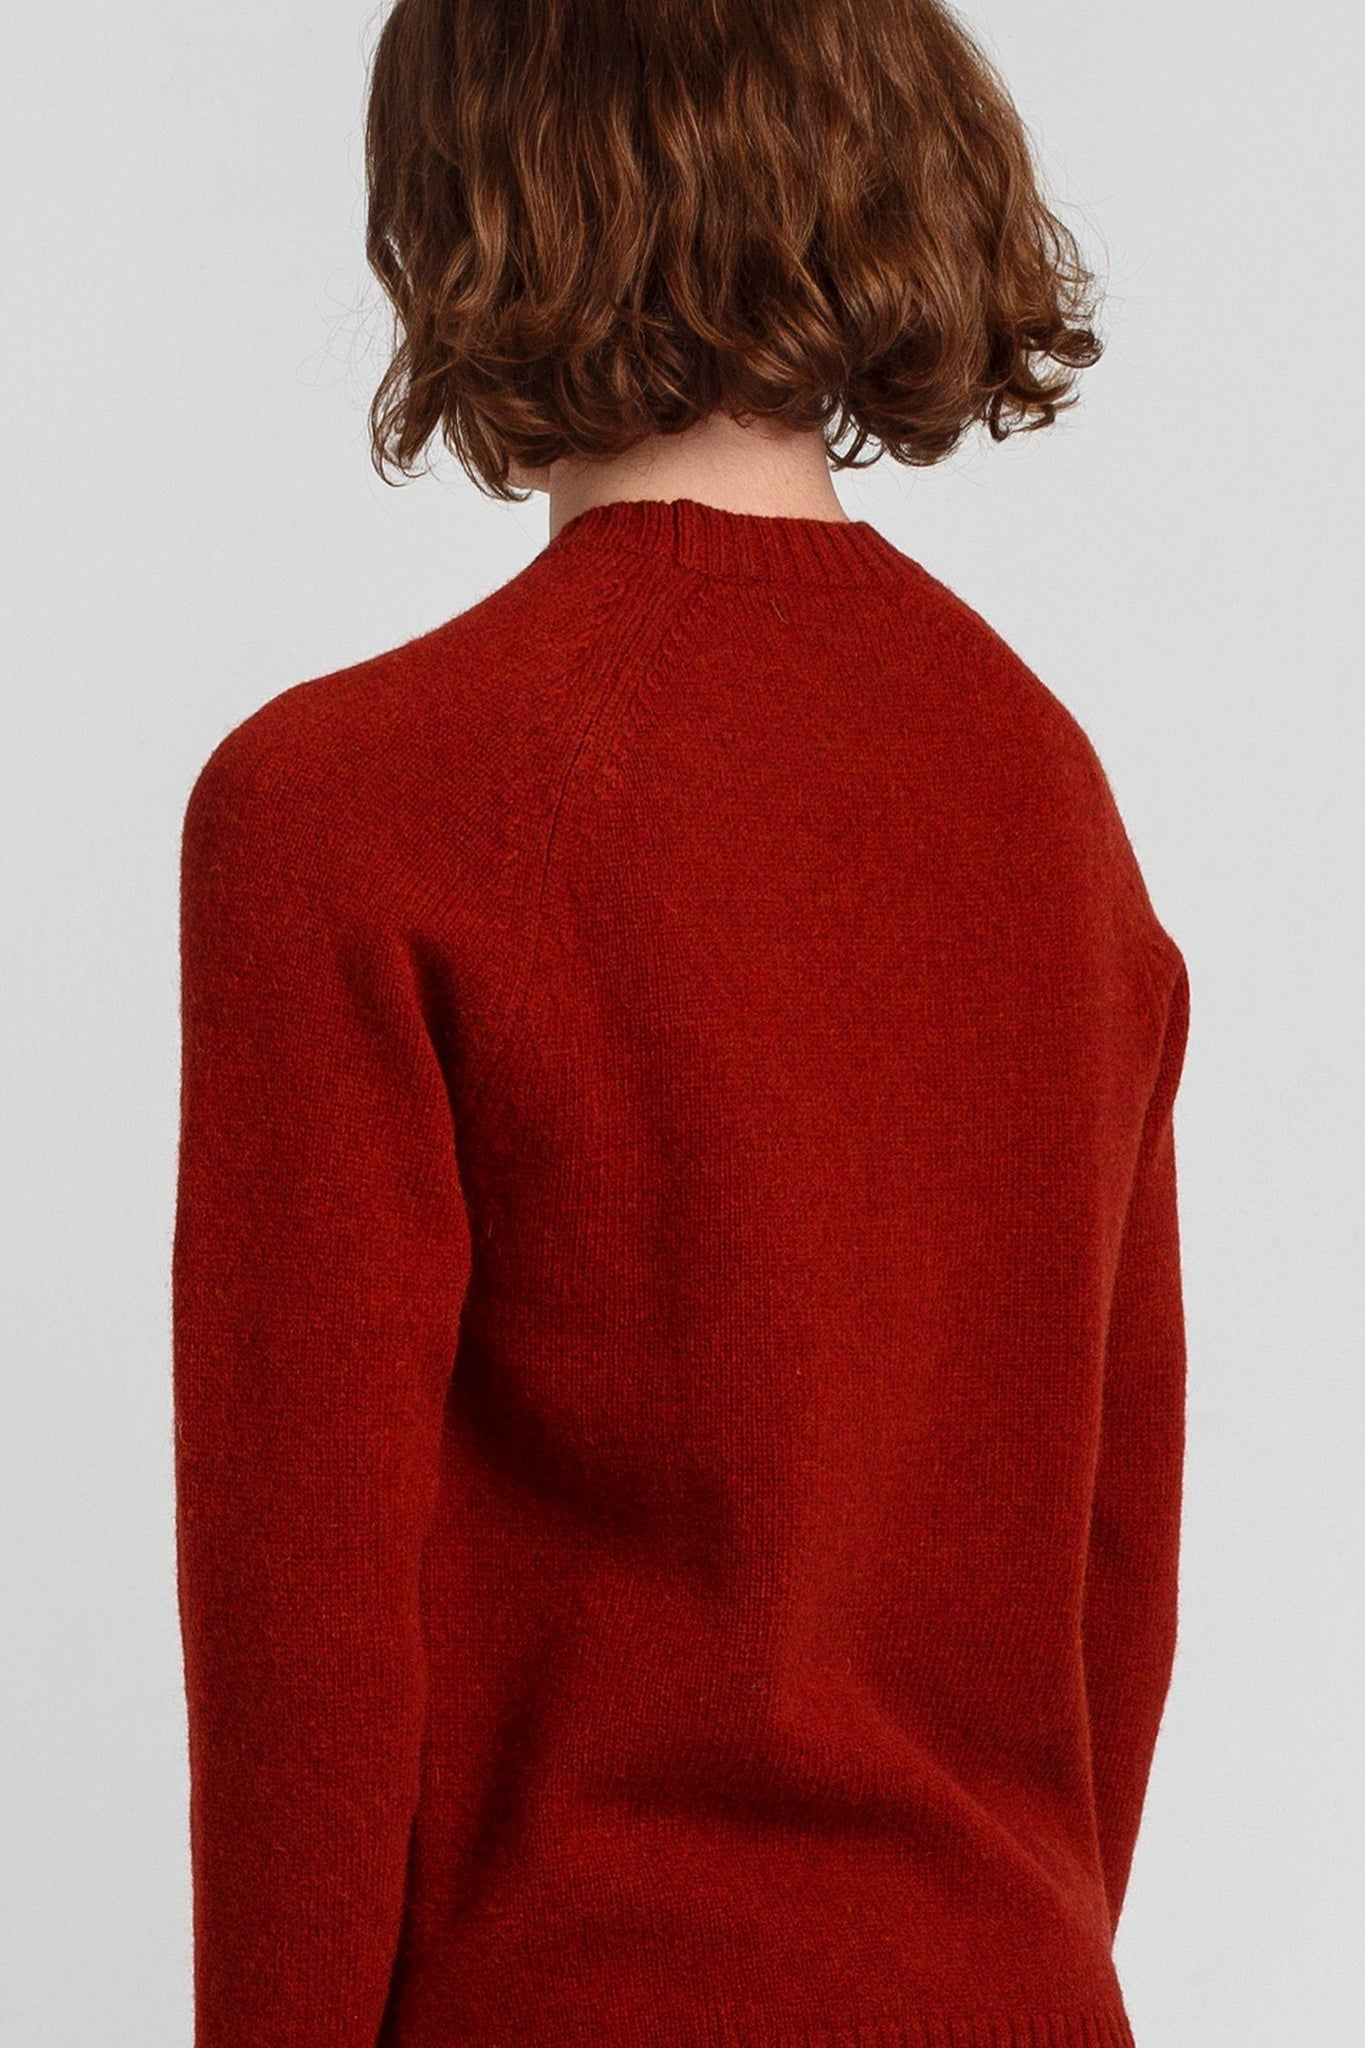 Red Wool Knitted Jumper - Life in Paradigm Menswear London